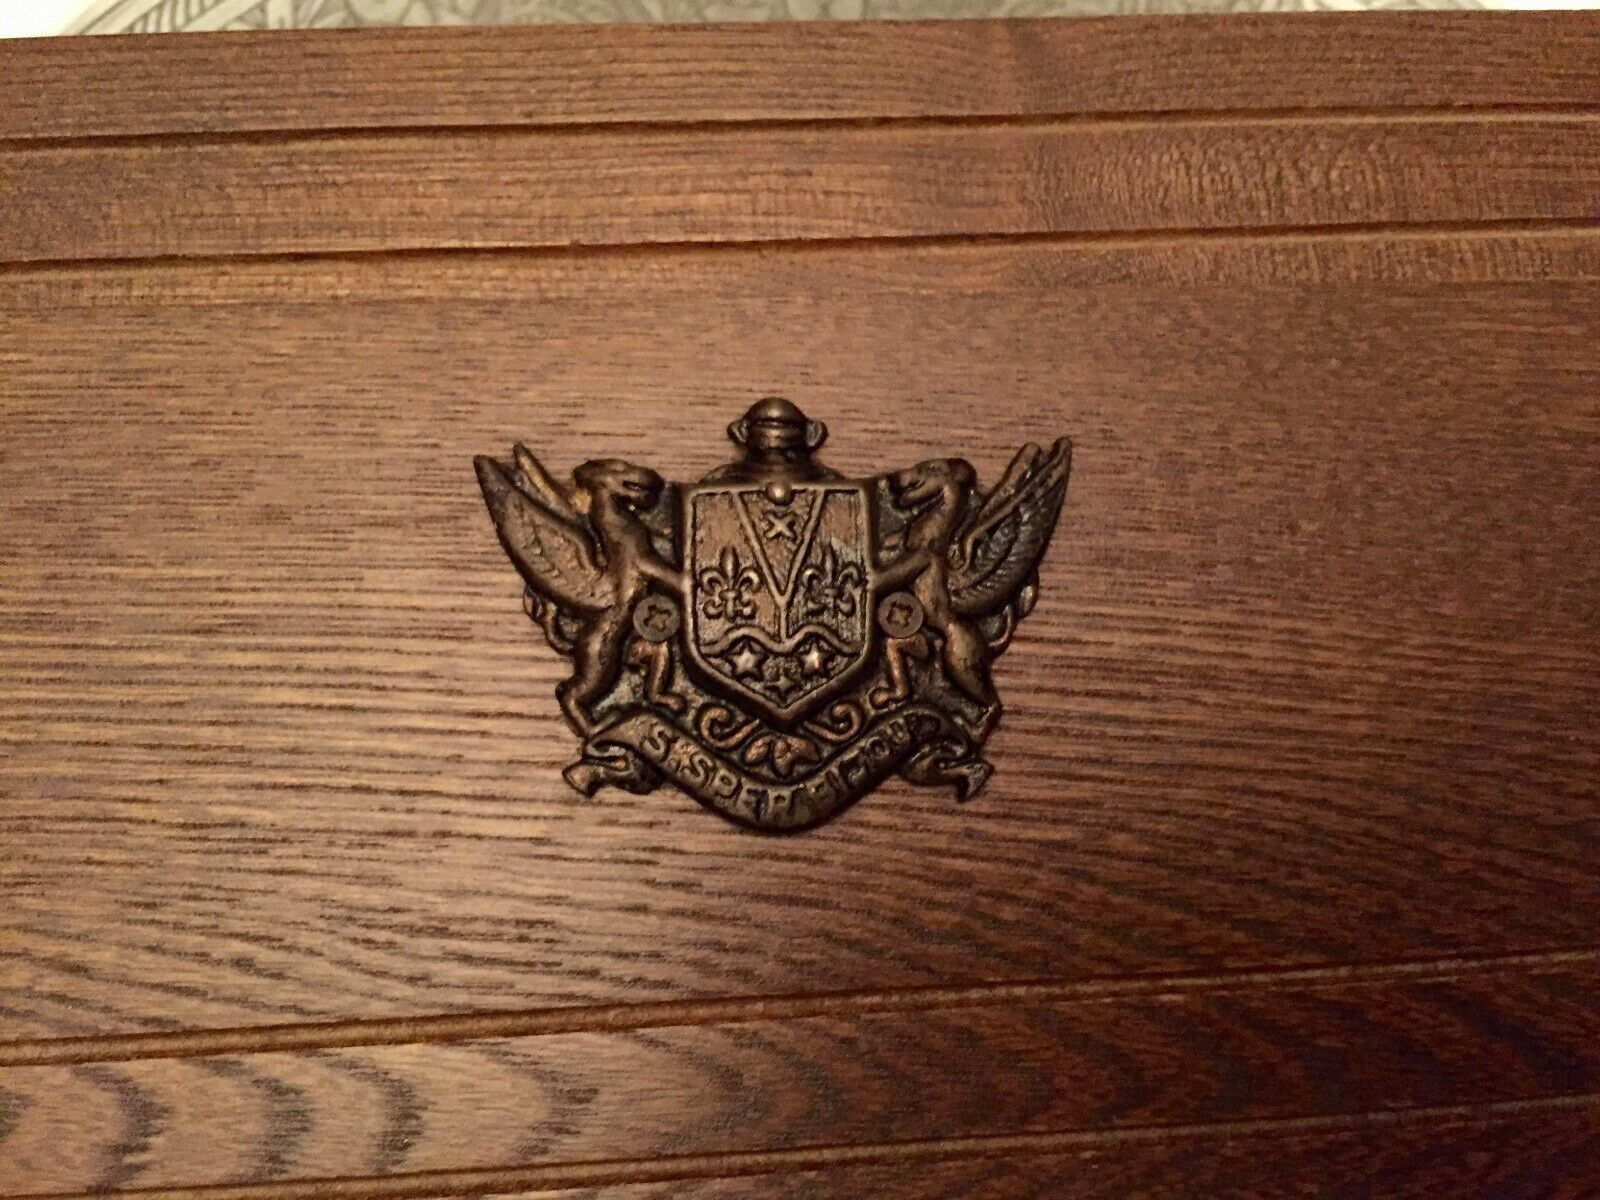 Primary image for Vintage Wooden Treasure Chest Jewelry Trinket Box  Japan Crest Animal with Wings